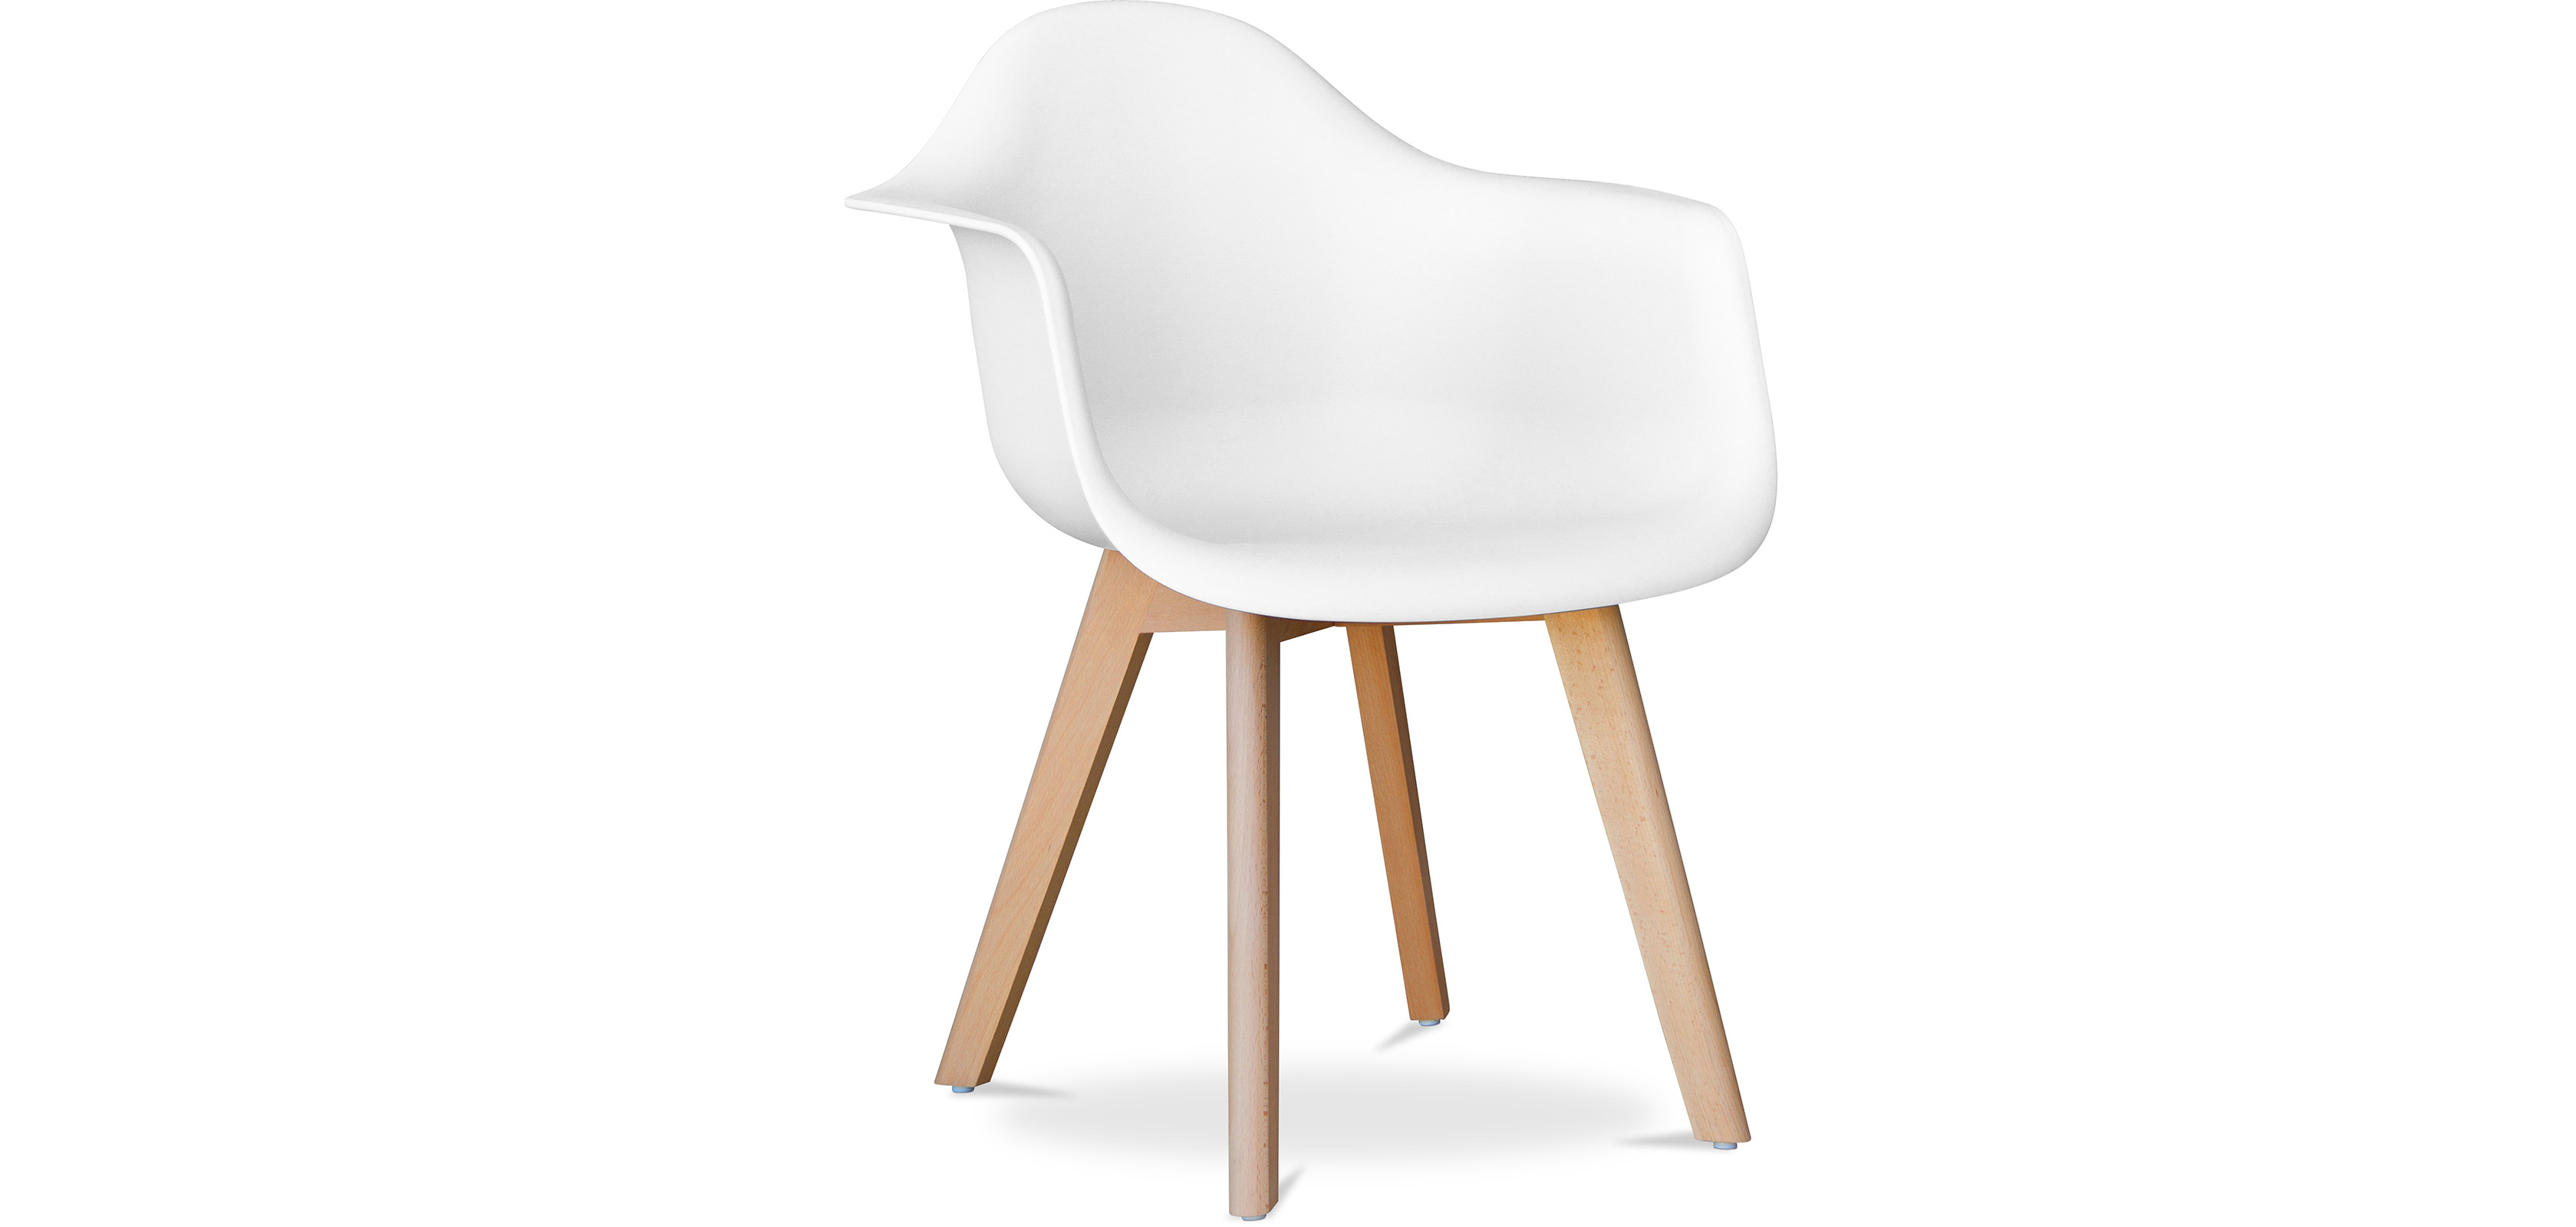 Buy Design Dawood chair White 58595 - in the UK